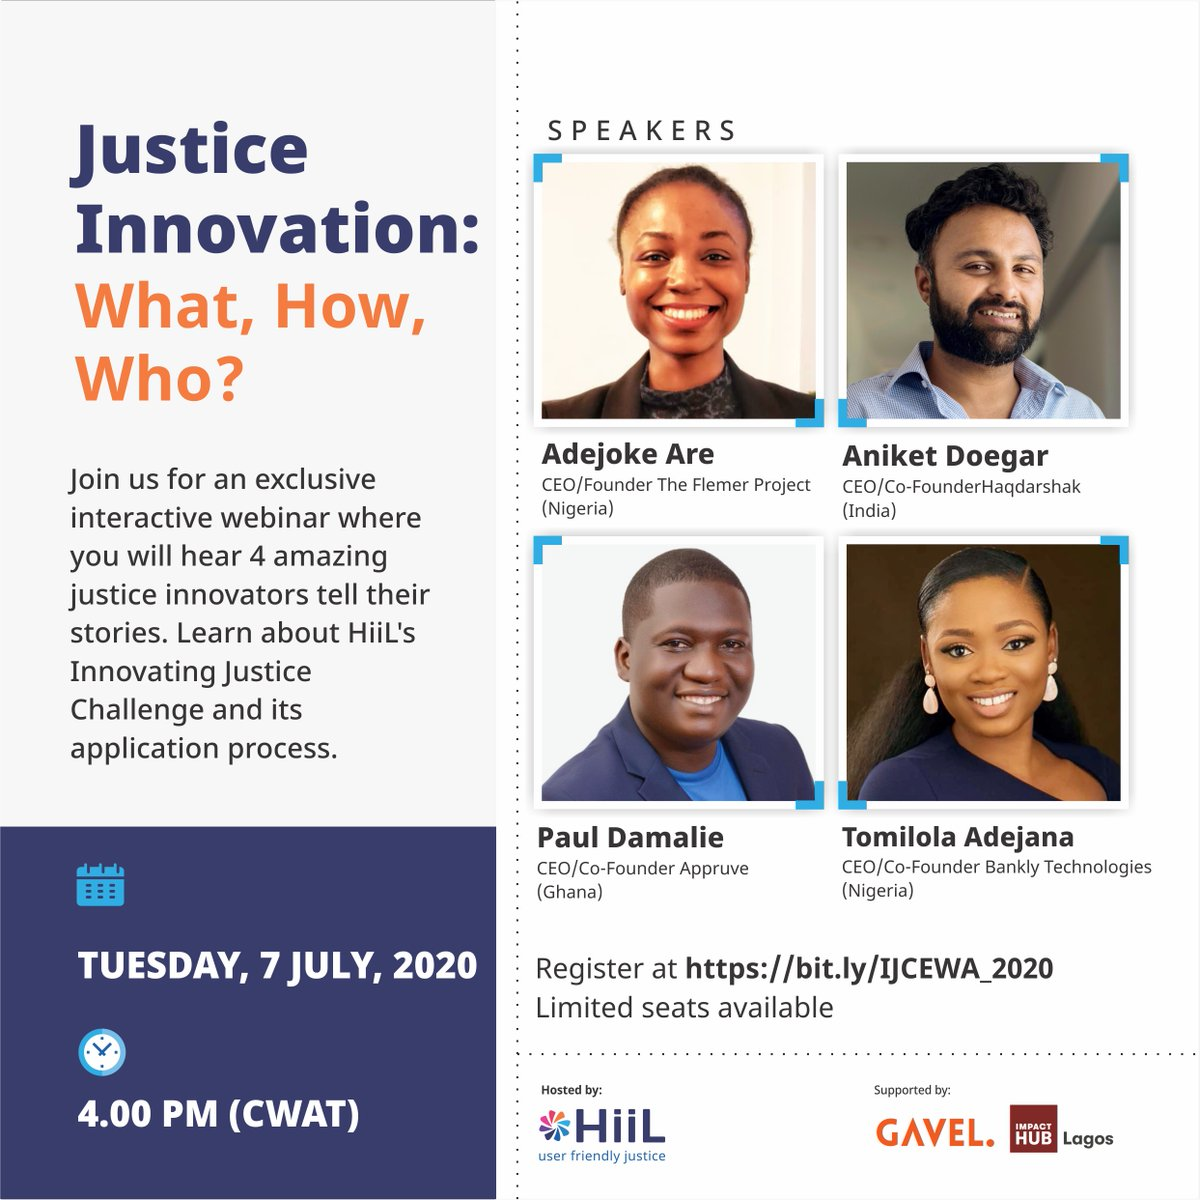 Justice Innovation: What, How, Who  Join us for this exclusive webinar to hear the stories of 4 amazing justice innovators and their entrepreneurial journey to solving justice problems.  Register here: https://t.co/8oTBDtKKct  #justinnovate20 #InnovatingJusticeChallenge2020 https://t.co/UqdSInHZT1